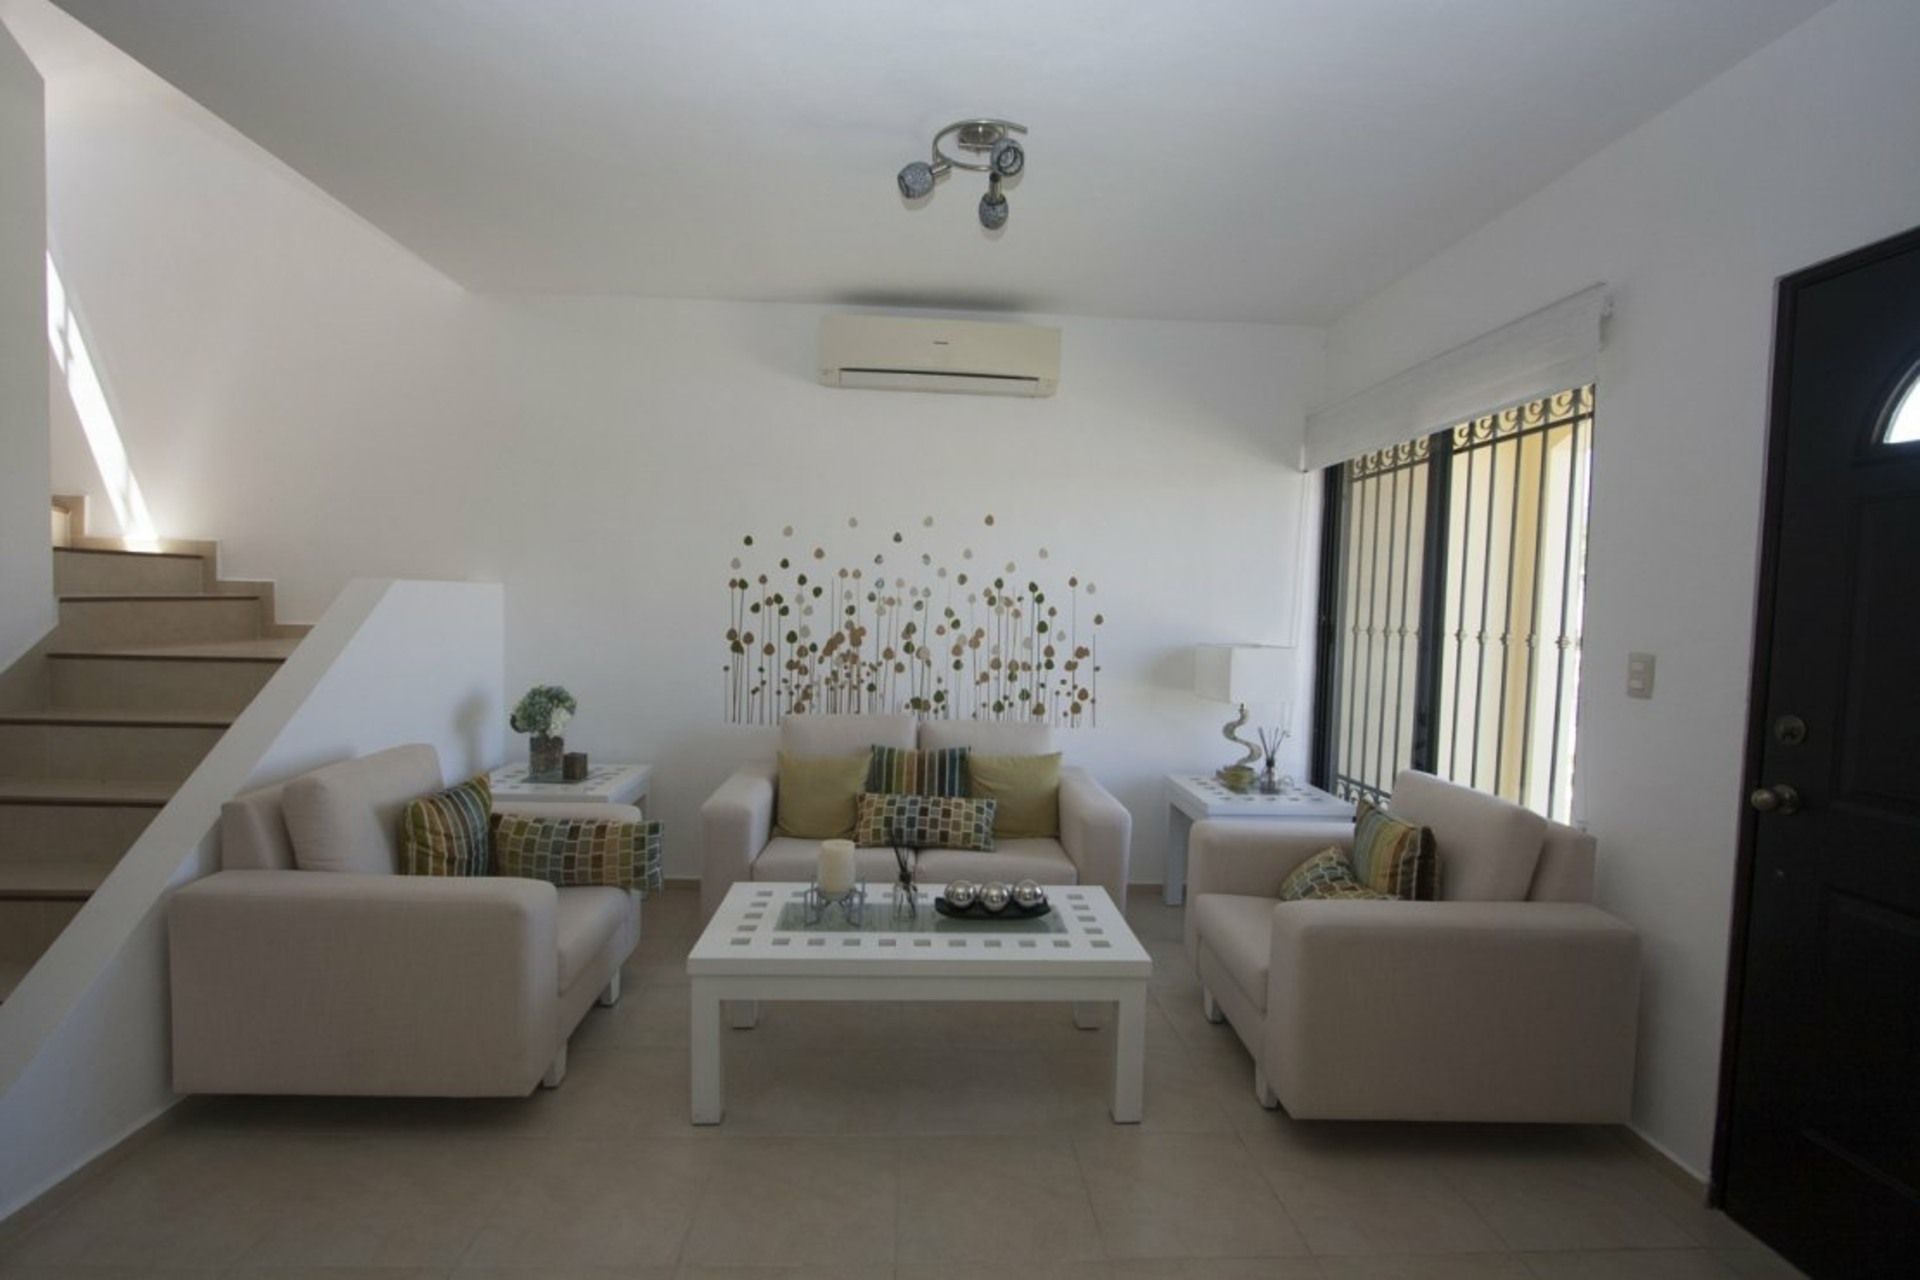 image 1 - House For sale Autres pays / Other countries - 8 rooms